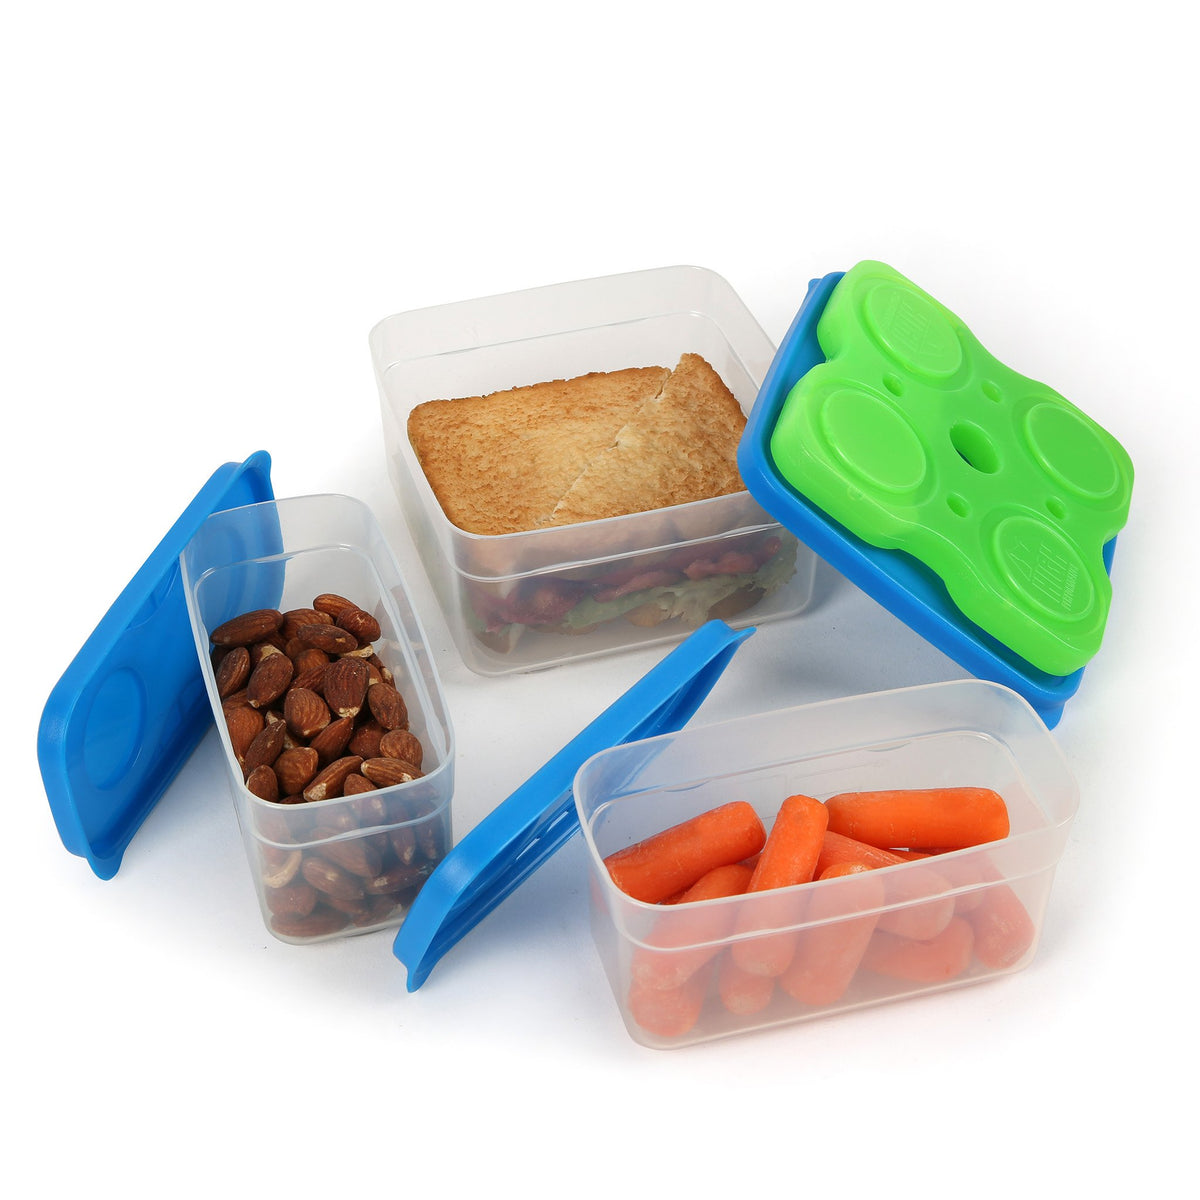 Interlockers 8 Piece Sandwich Set - propped